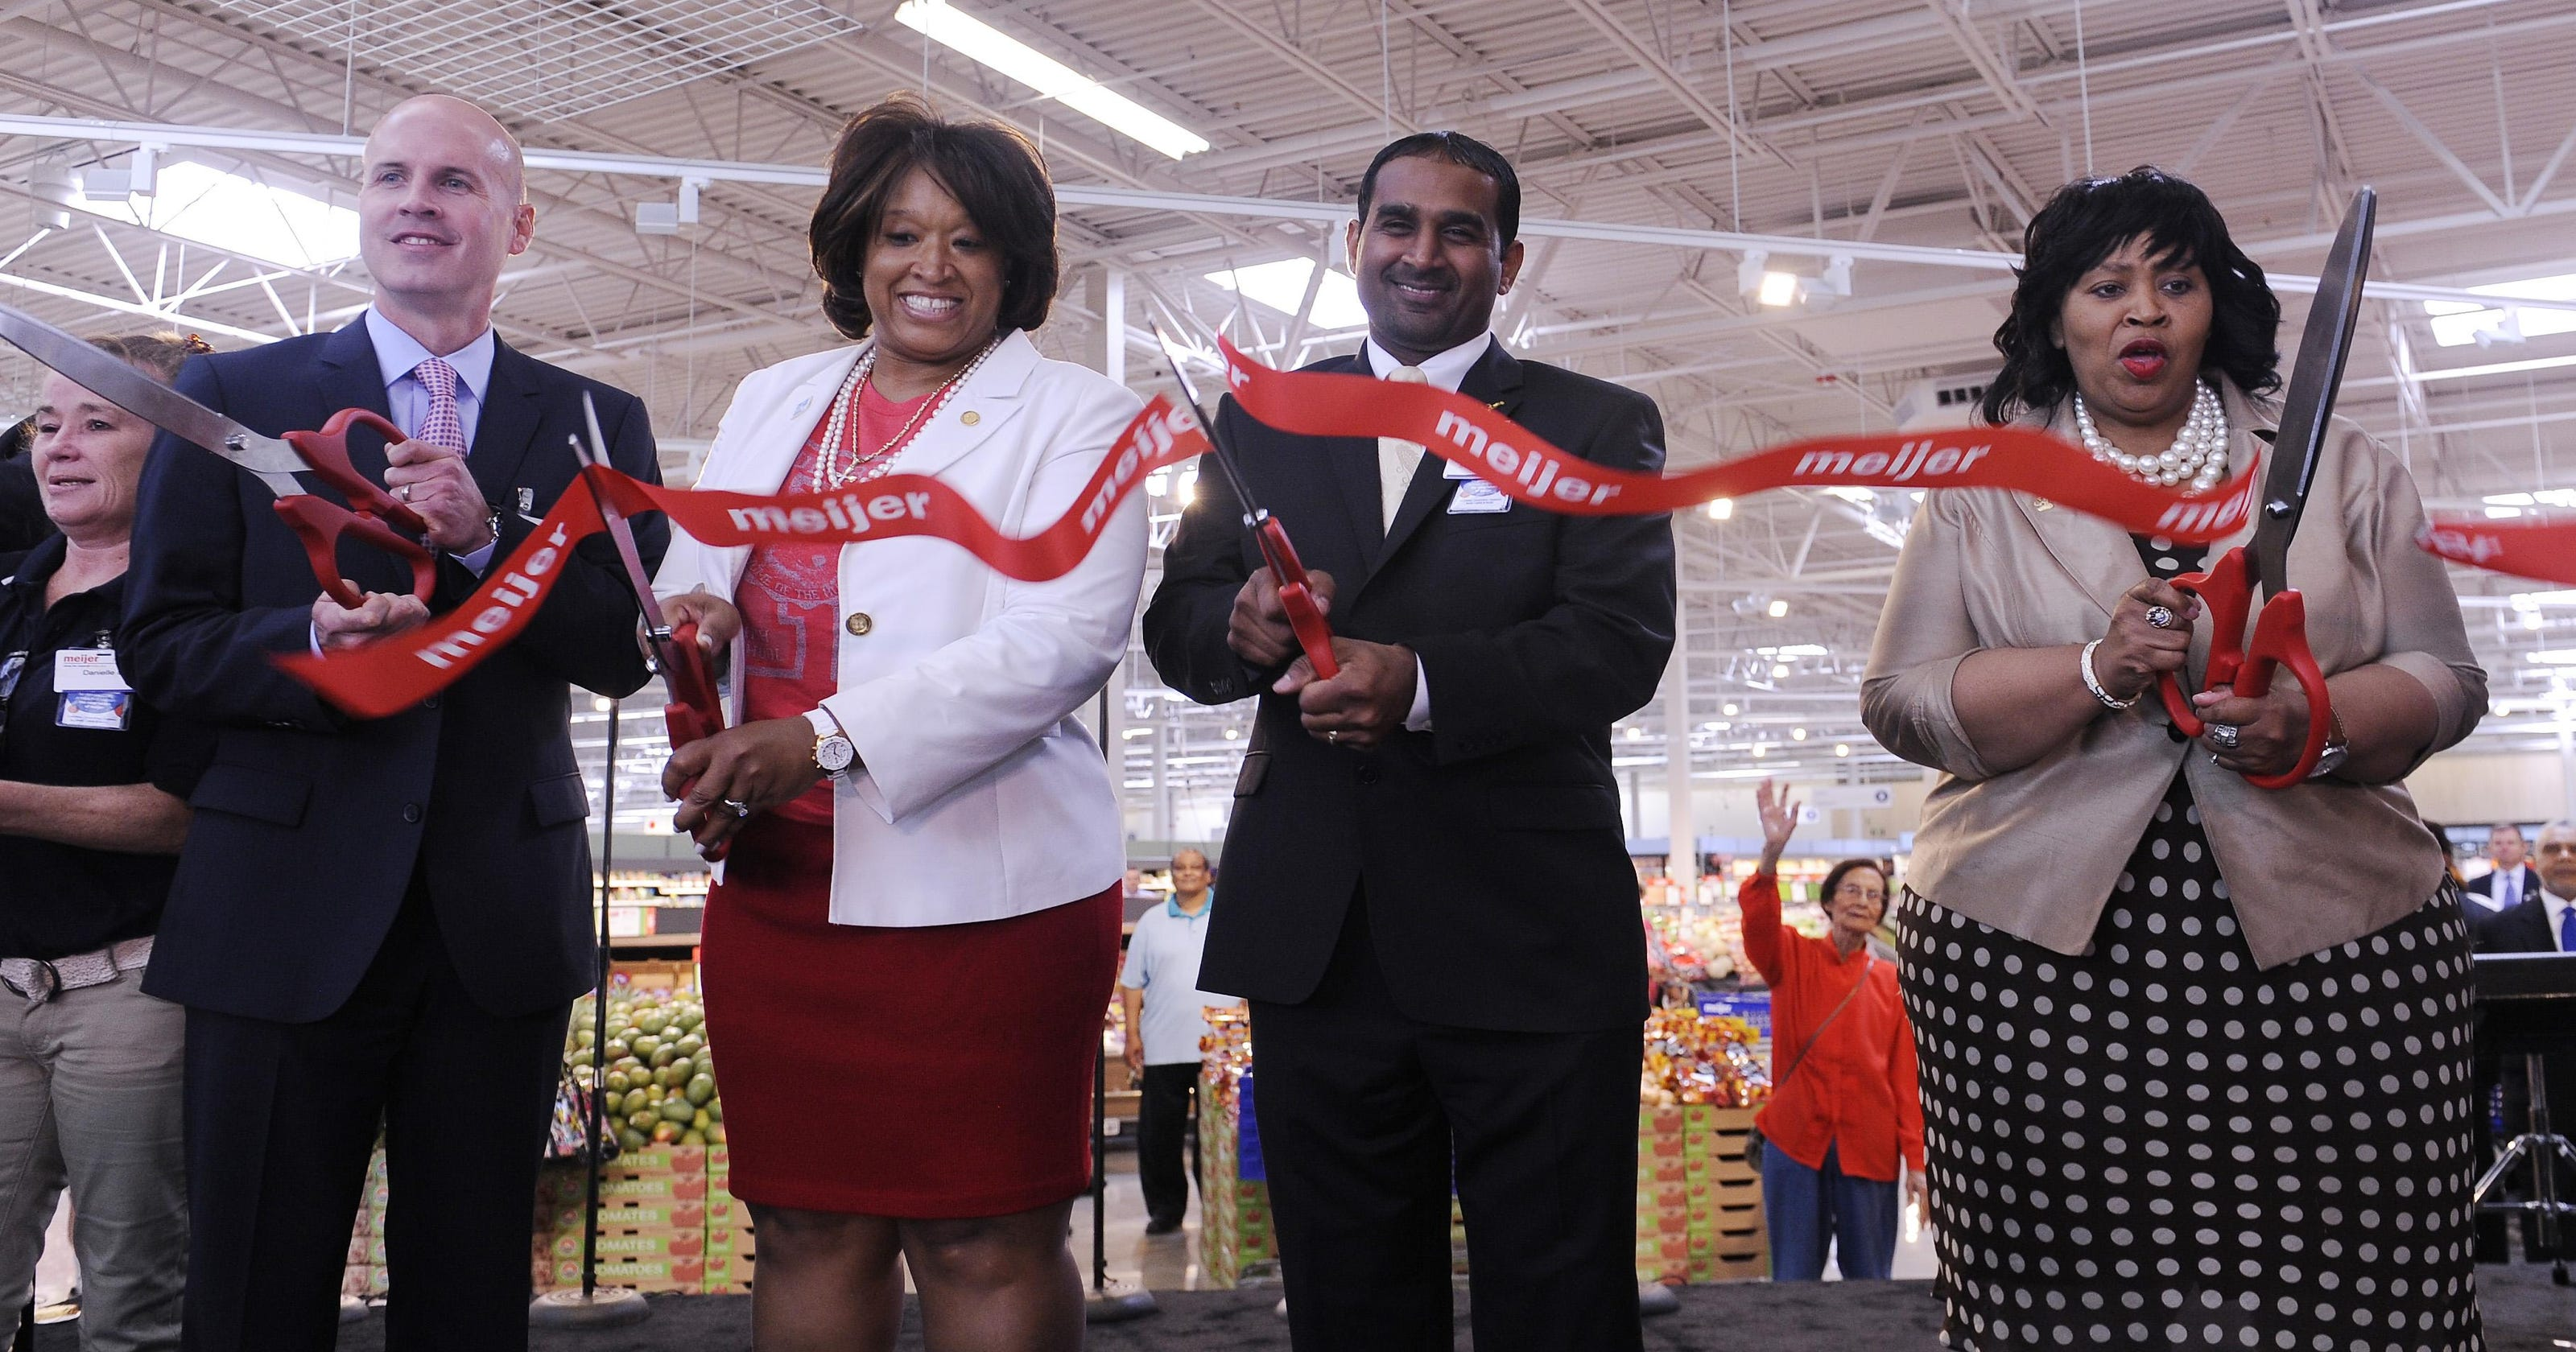 Meijer's new Detroit store keeps memory of Redford High